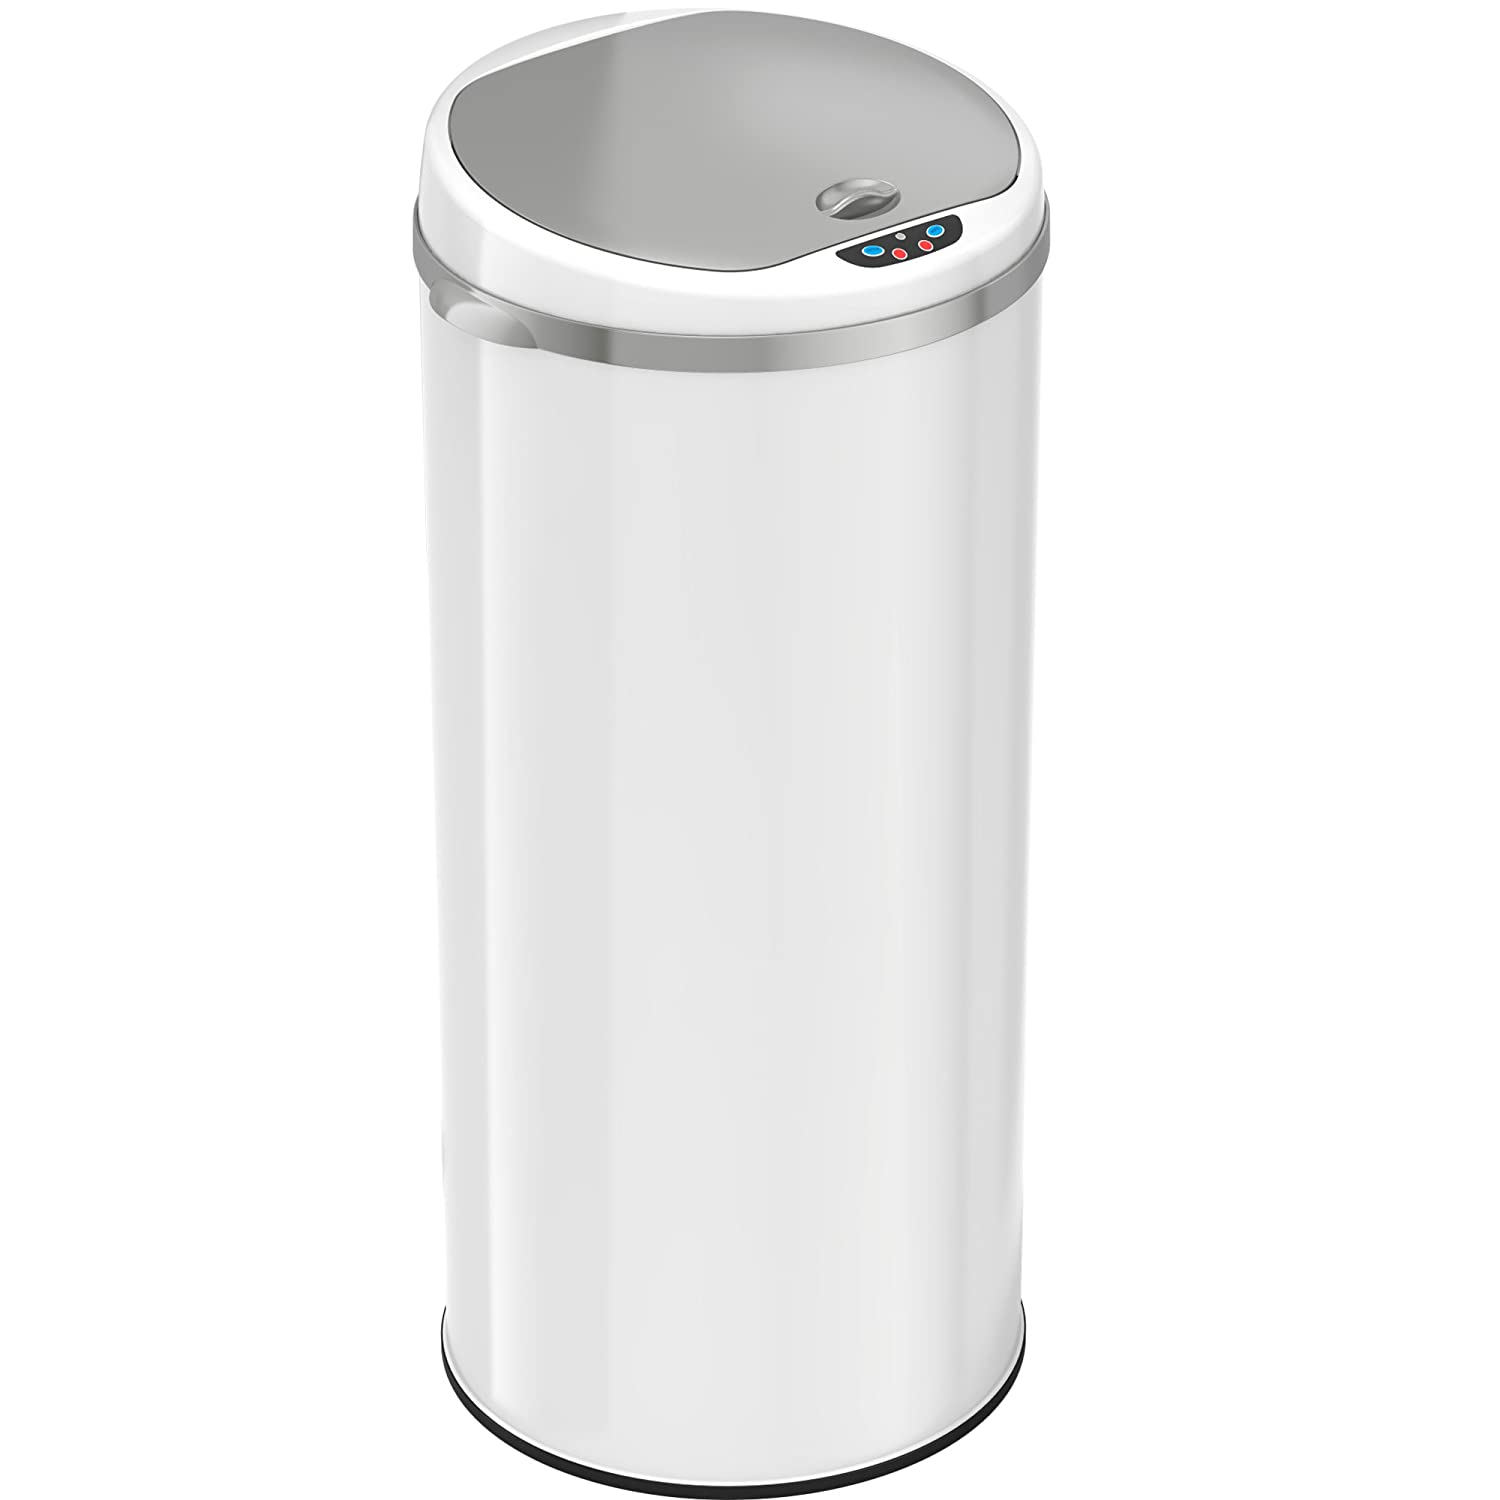 iTouchless 13 Gallon Automatic Trash Can with Odor Control System – White – Round – 49 Liter Kitchen Trash Bin Inc. MT13RW